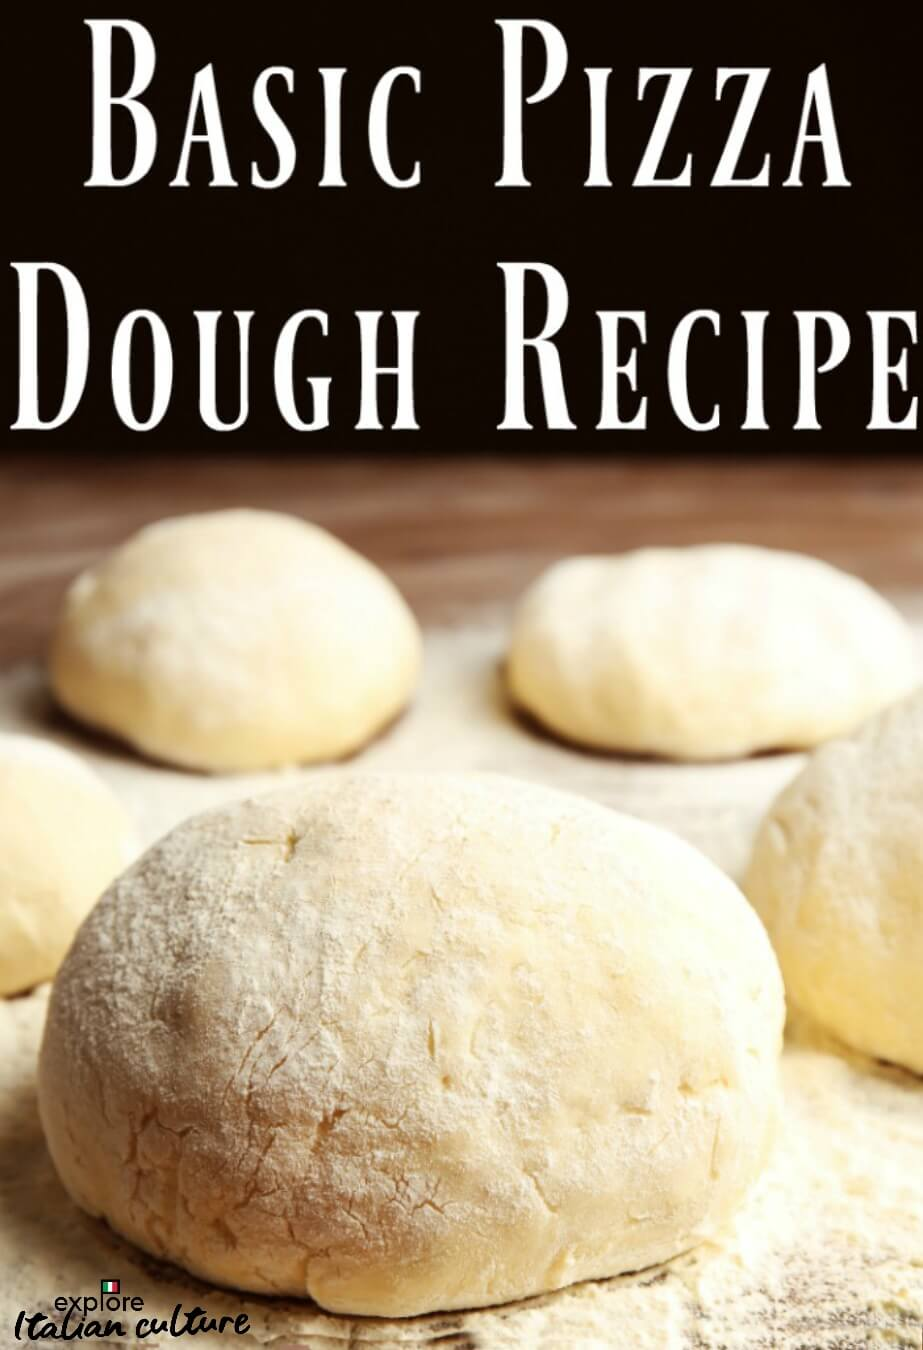 Basic Italian pizza dough recipe - click to see!